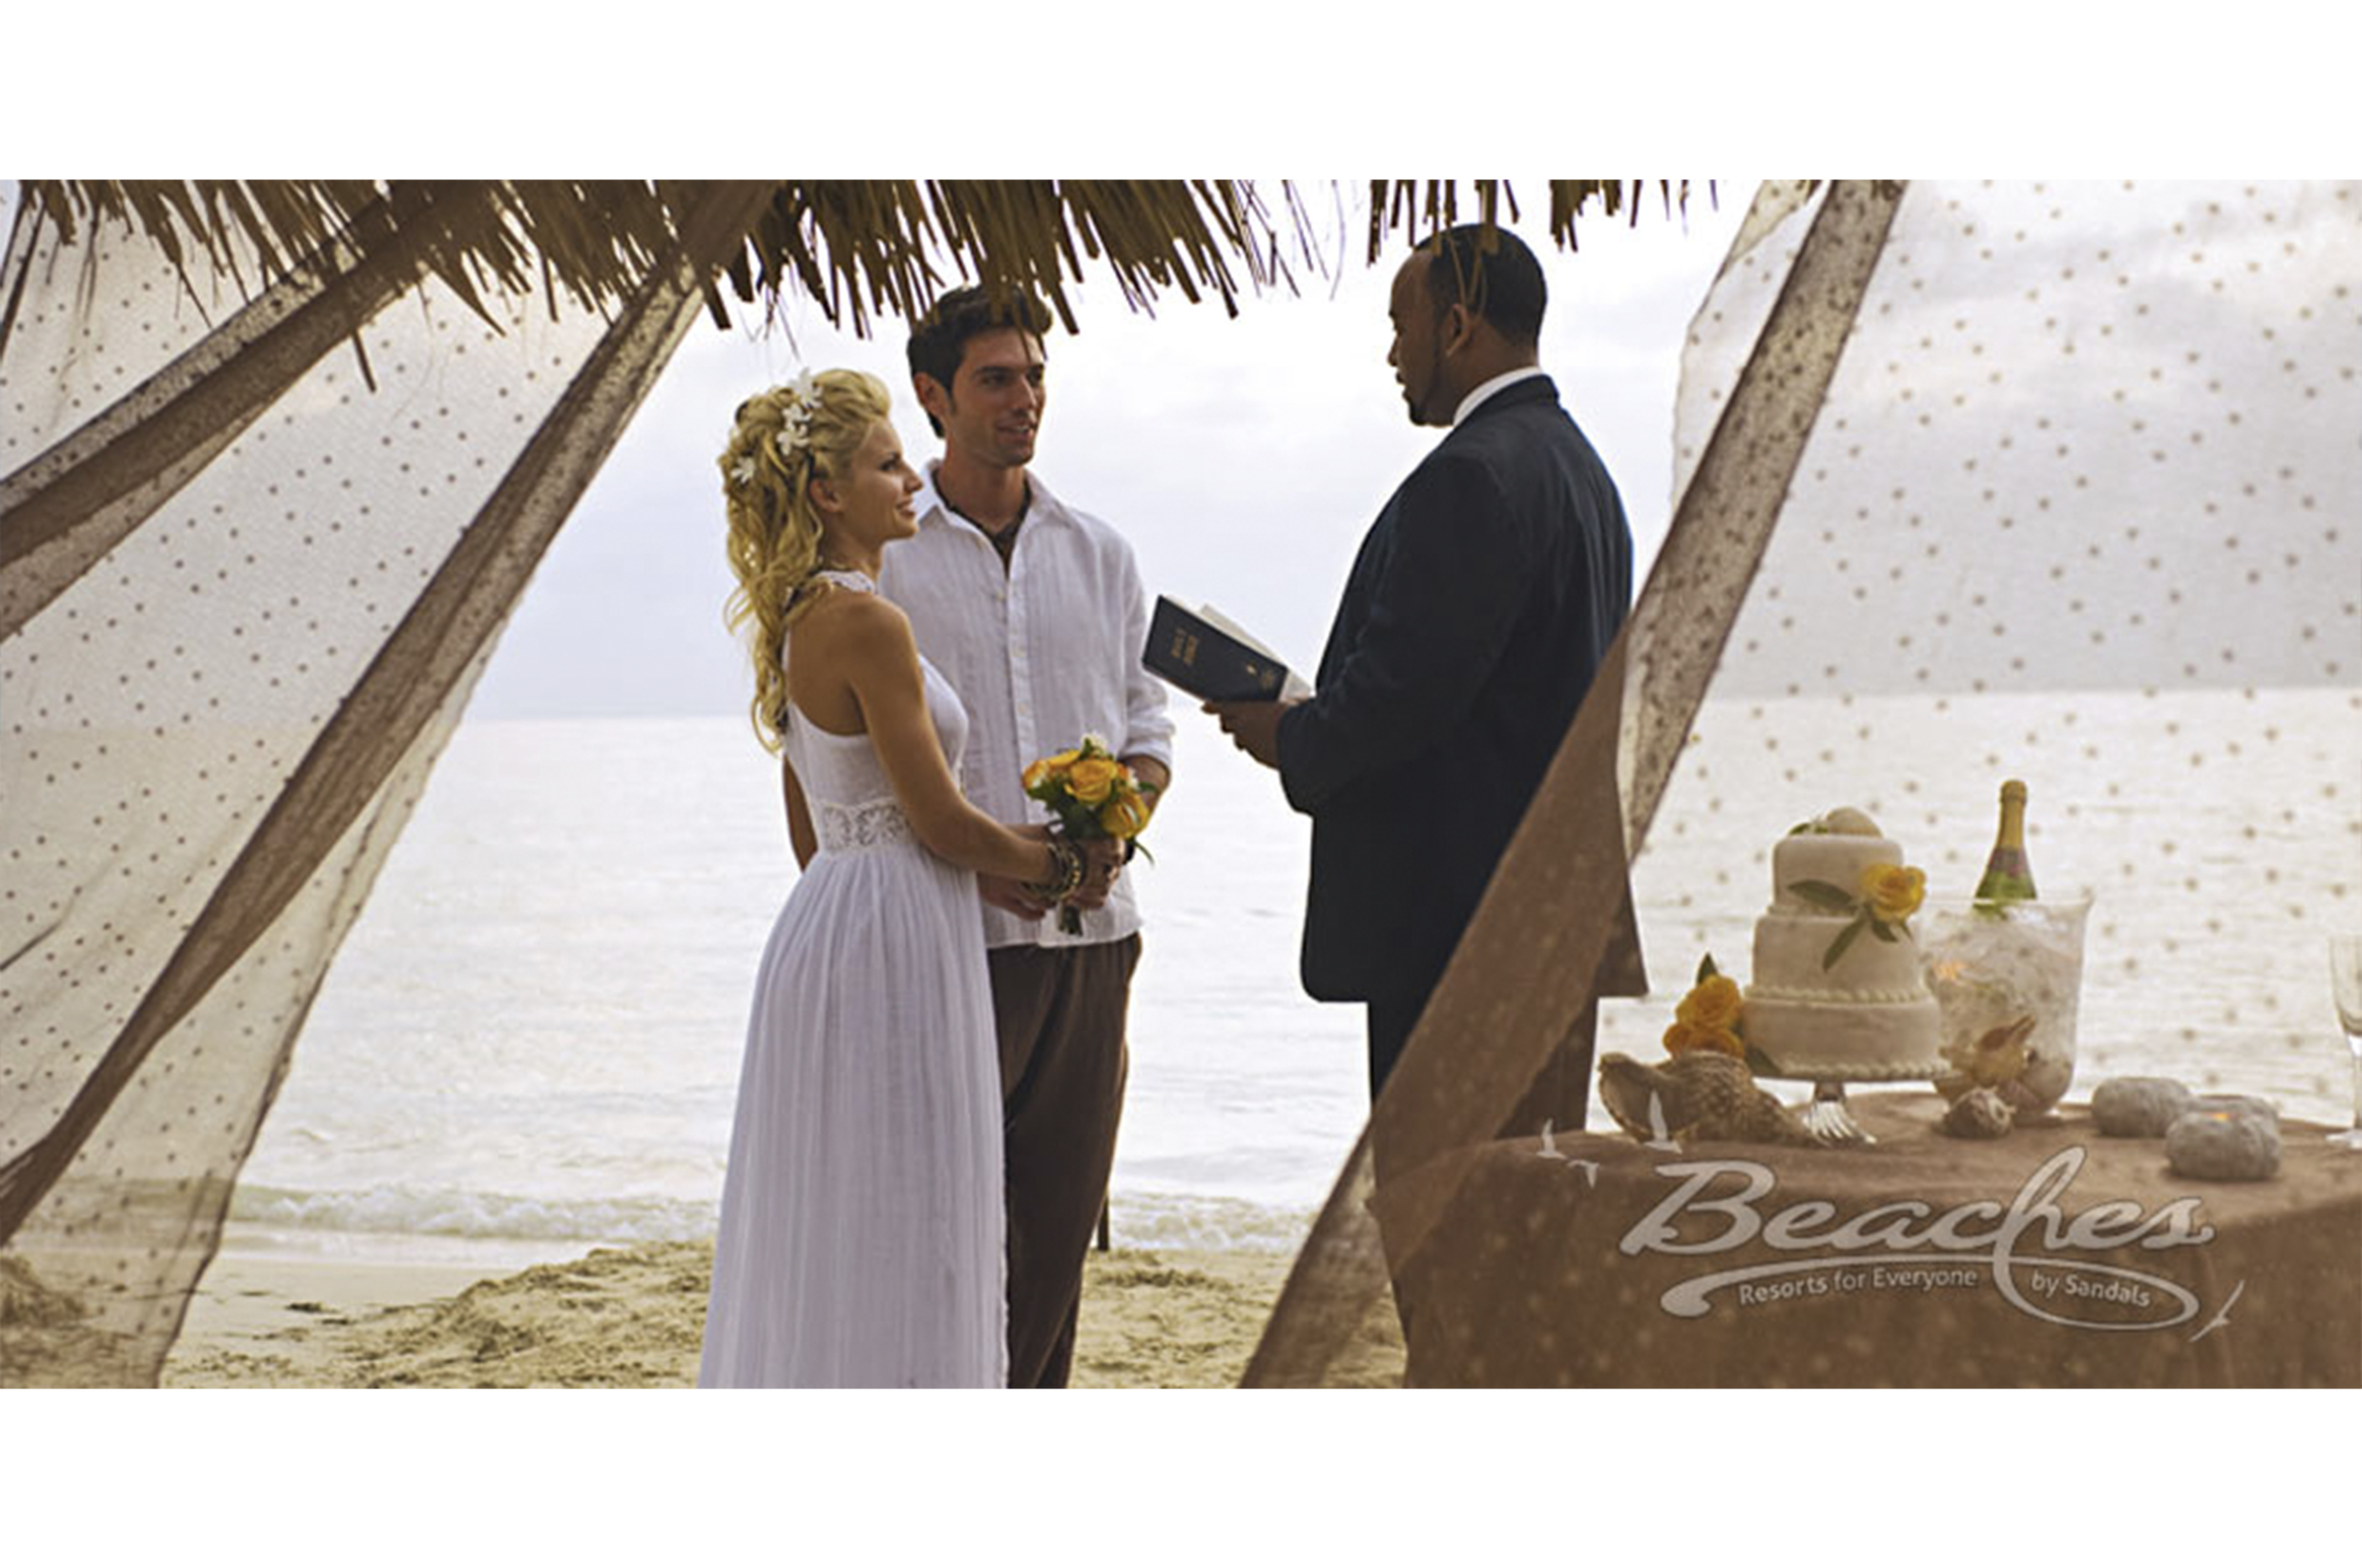 Image provided by Beaches Resorts